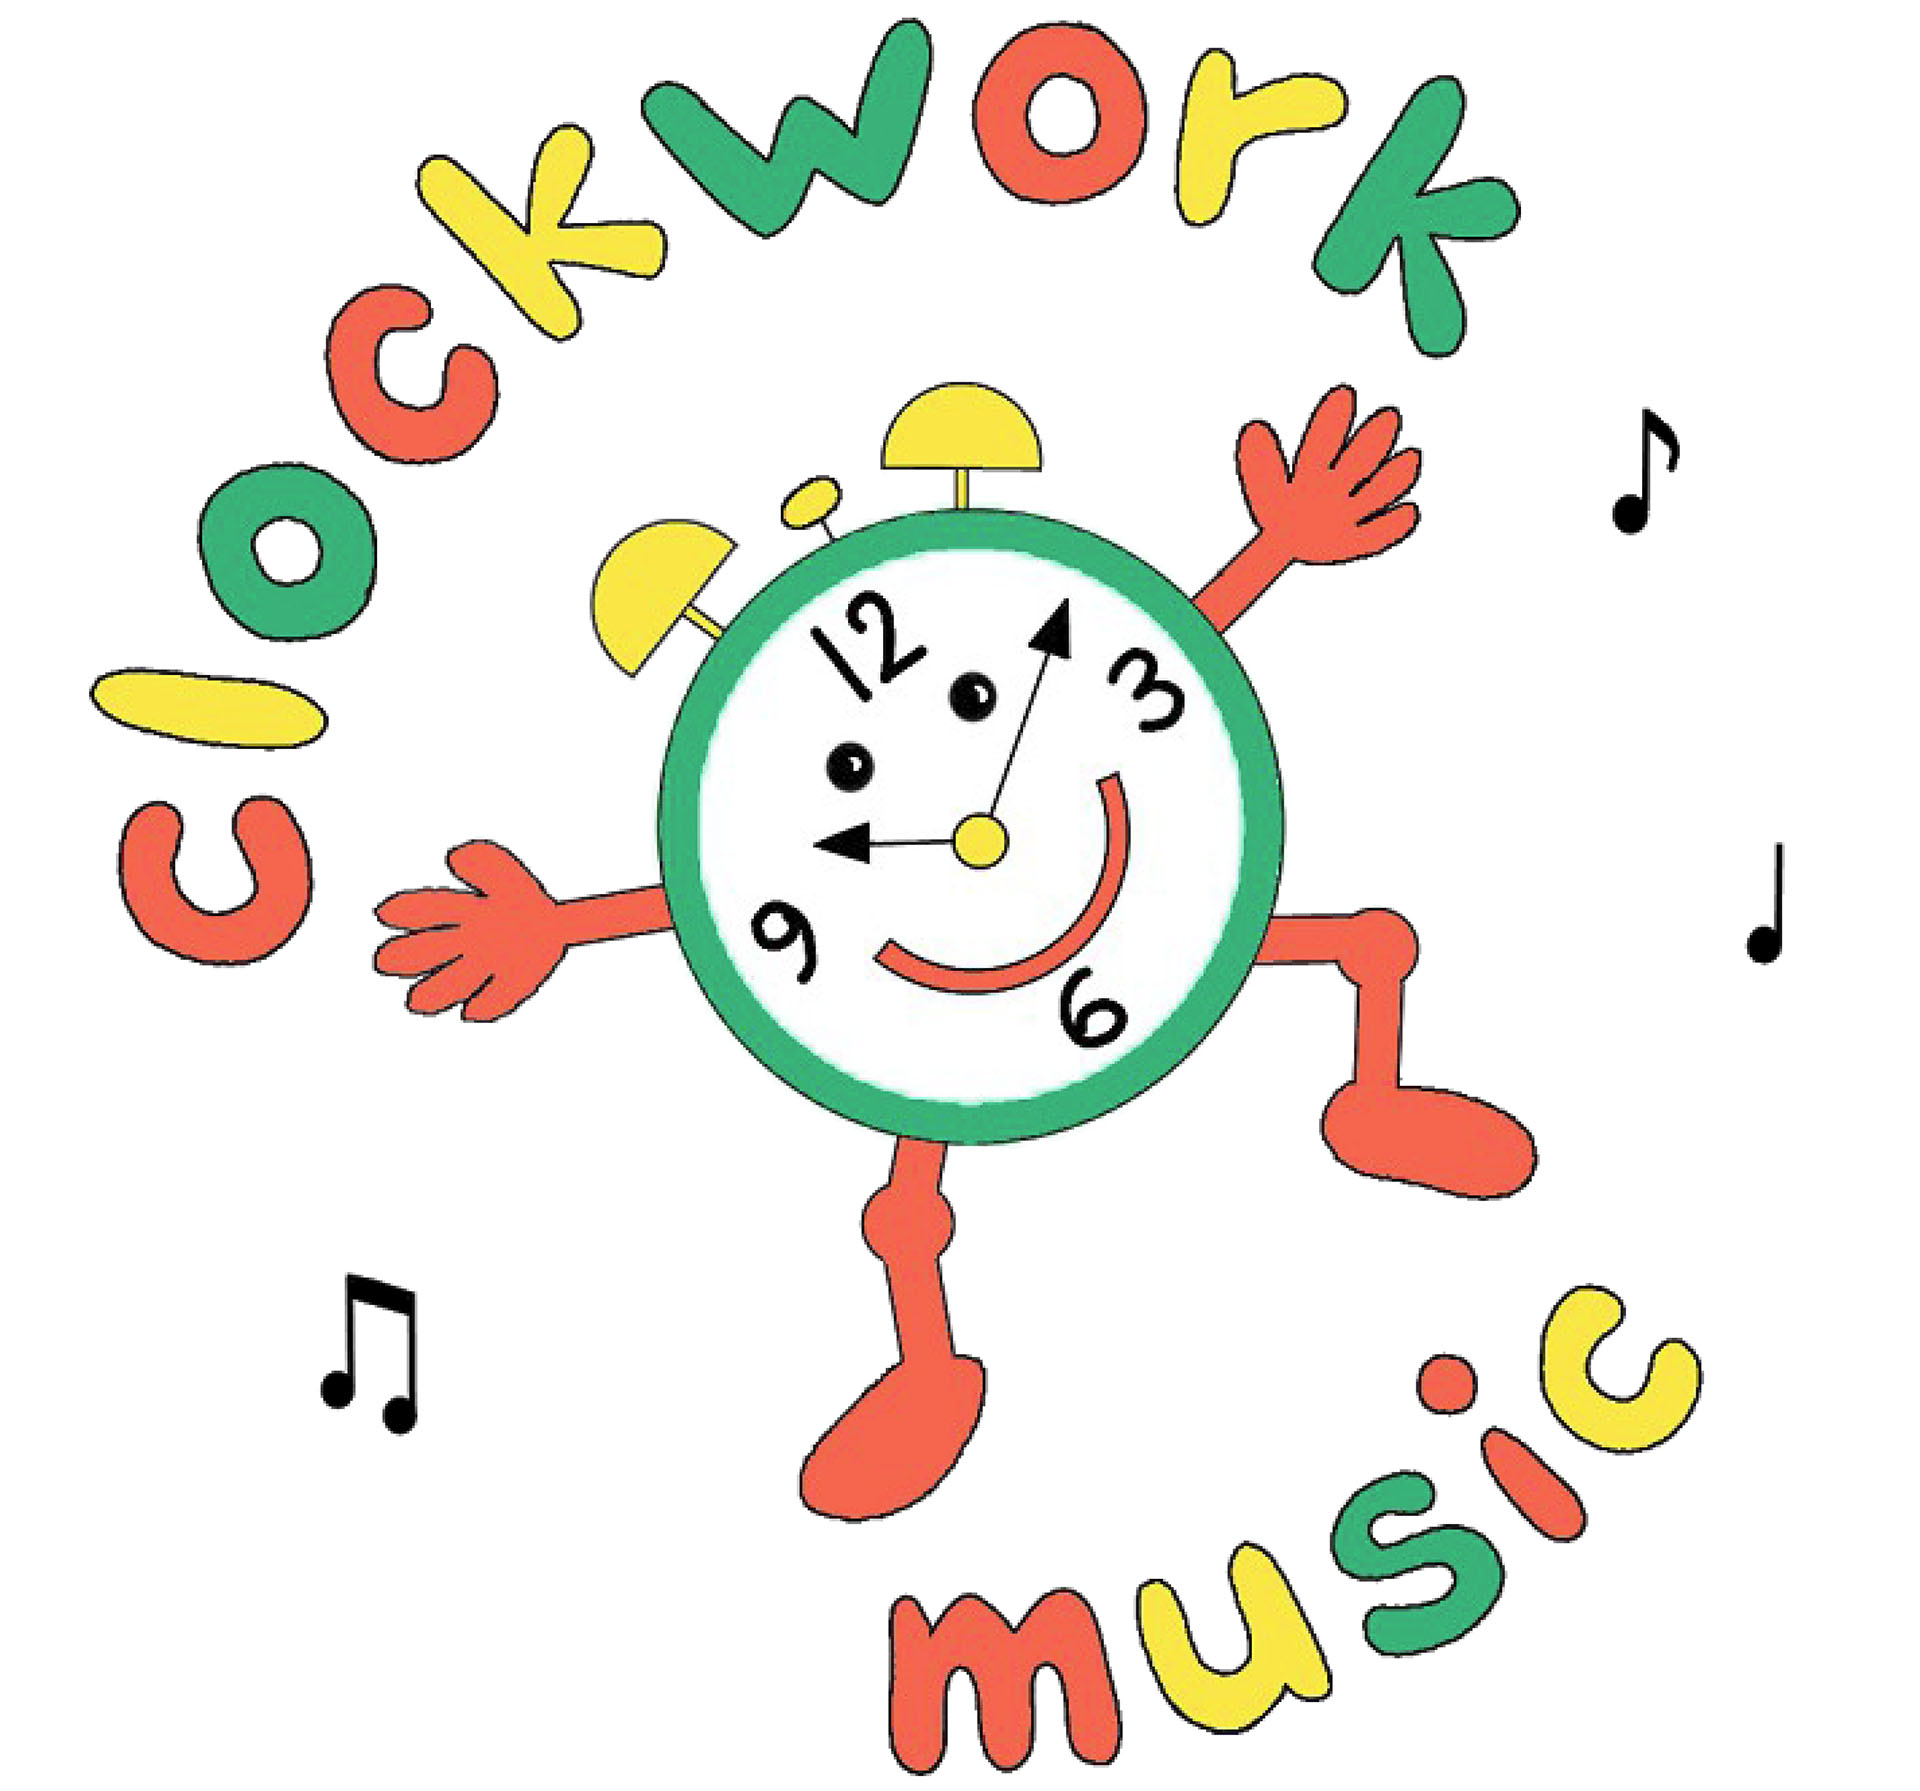 Clockwork Music's logo